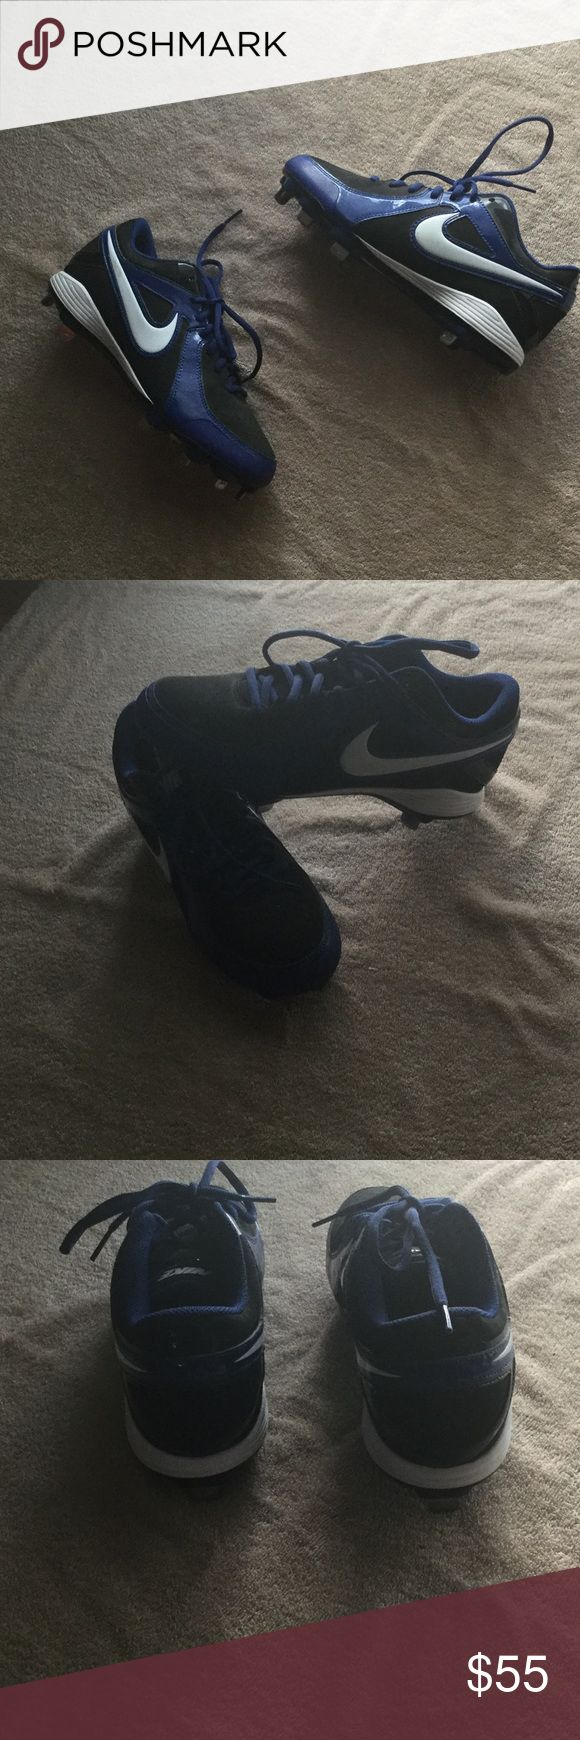 Nike - Baseball Cleats Shoes Very Good condition. Make an offer and no trade. Nike Shoes Athletic Shoes